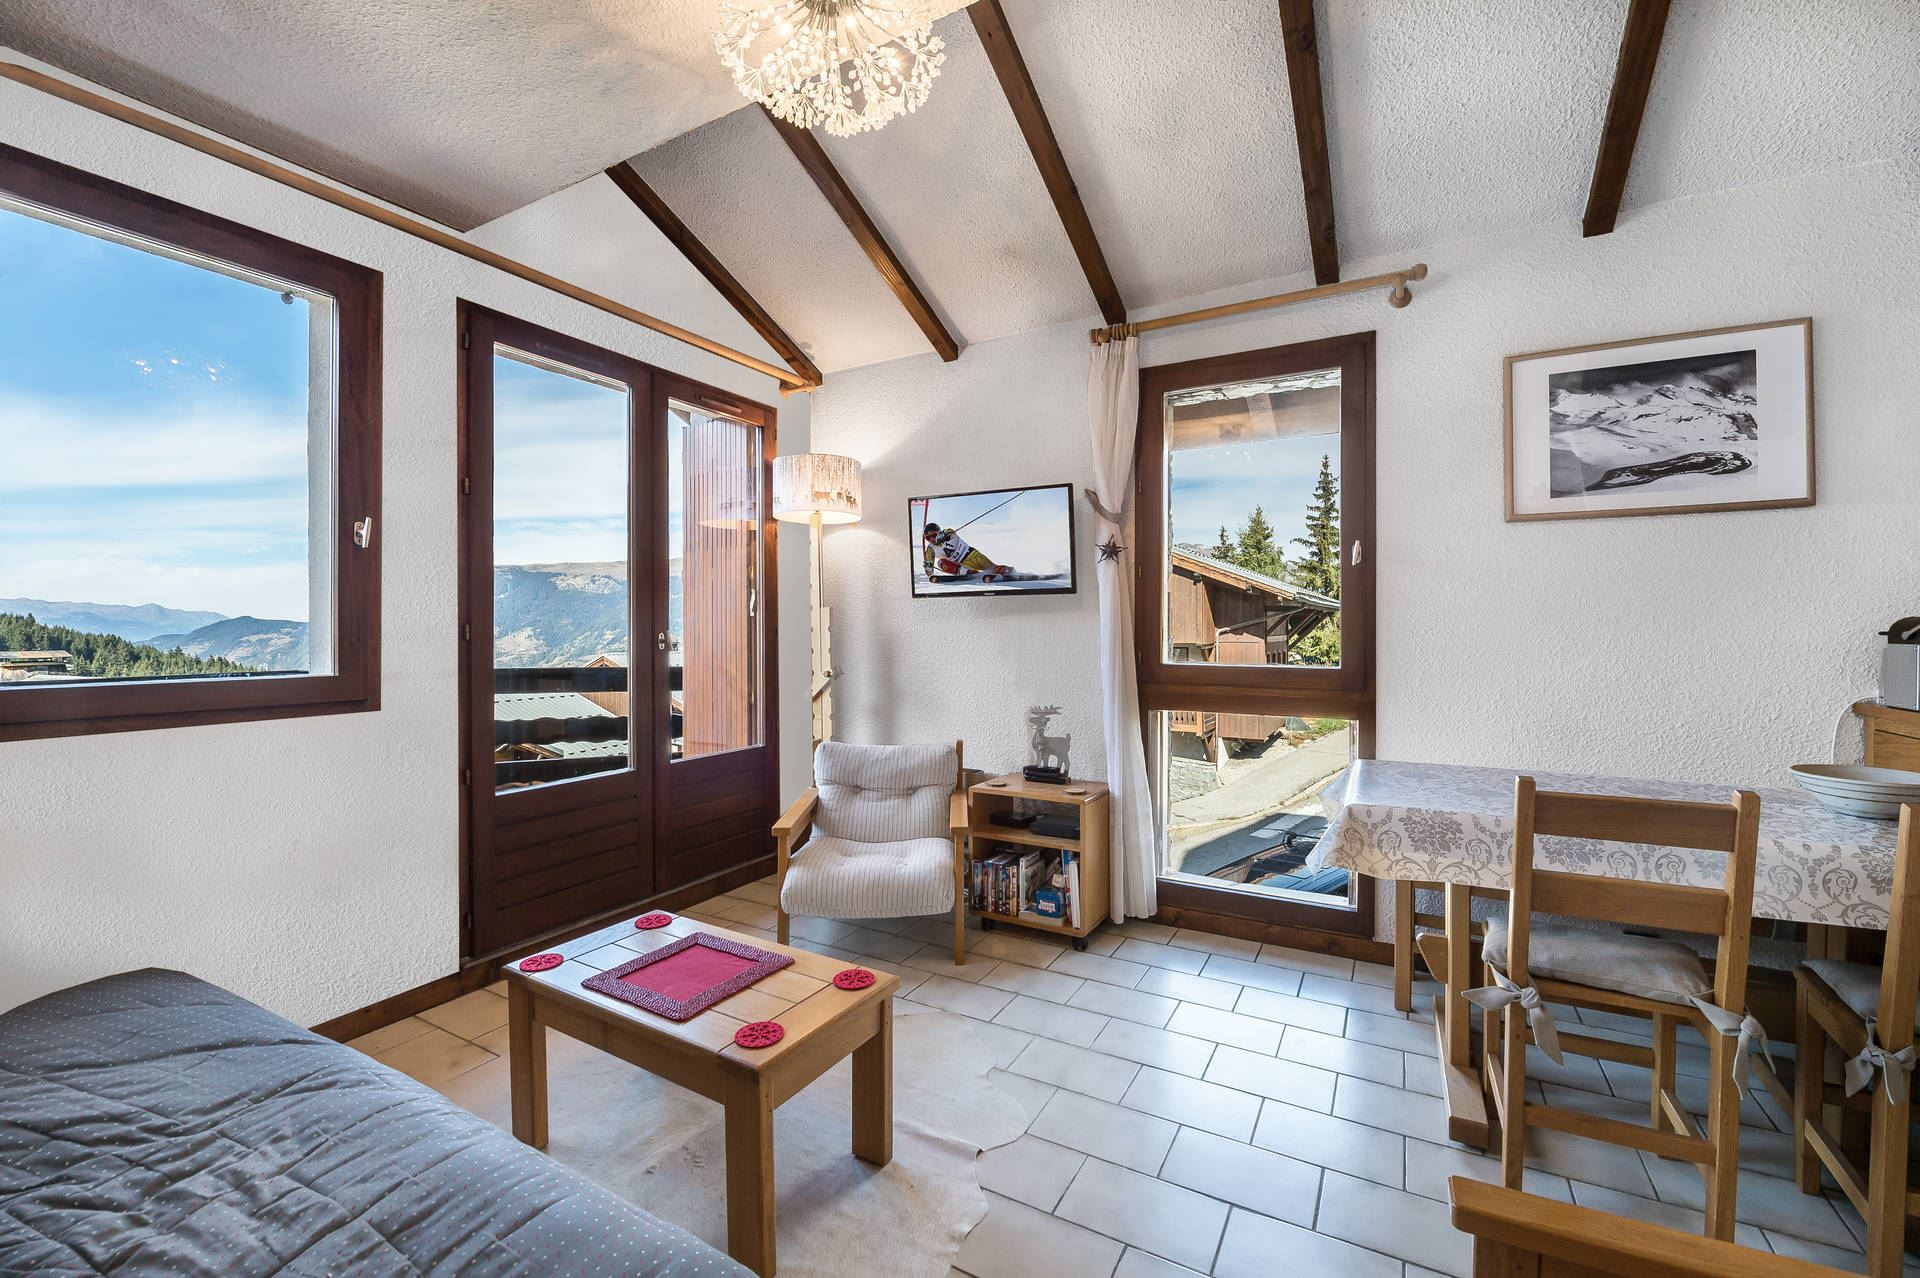 2 rooms 4 people / LES PRIMEVERES 12 (mountain)